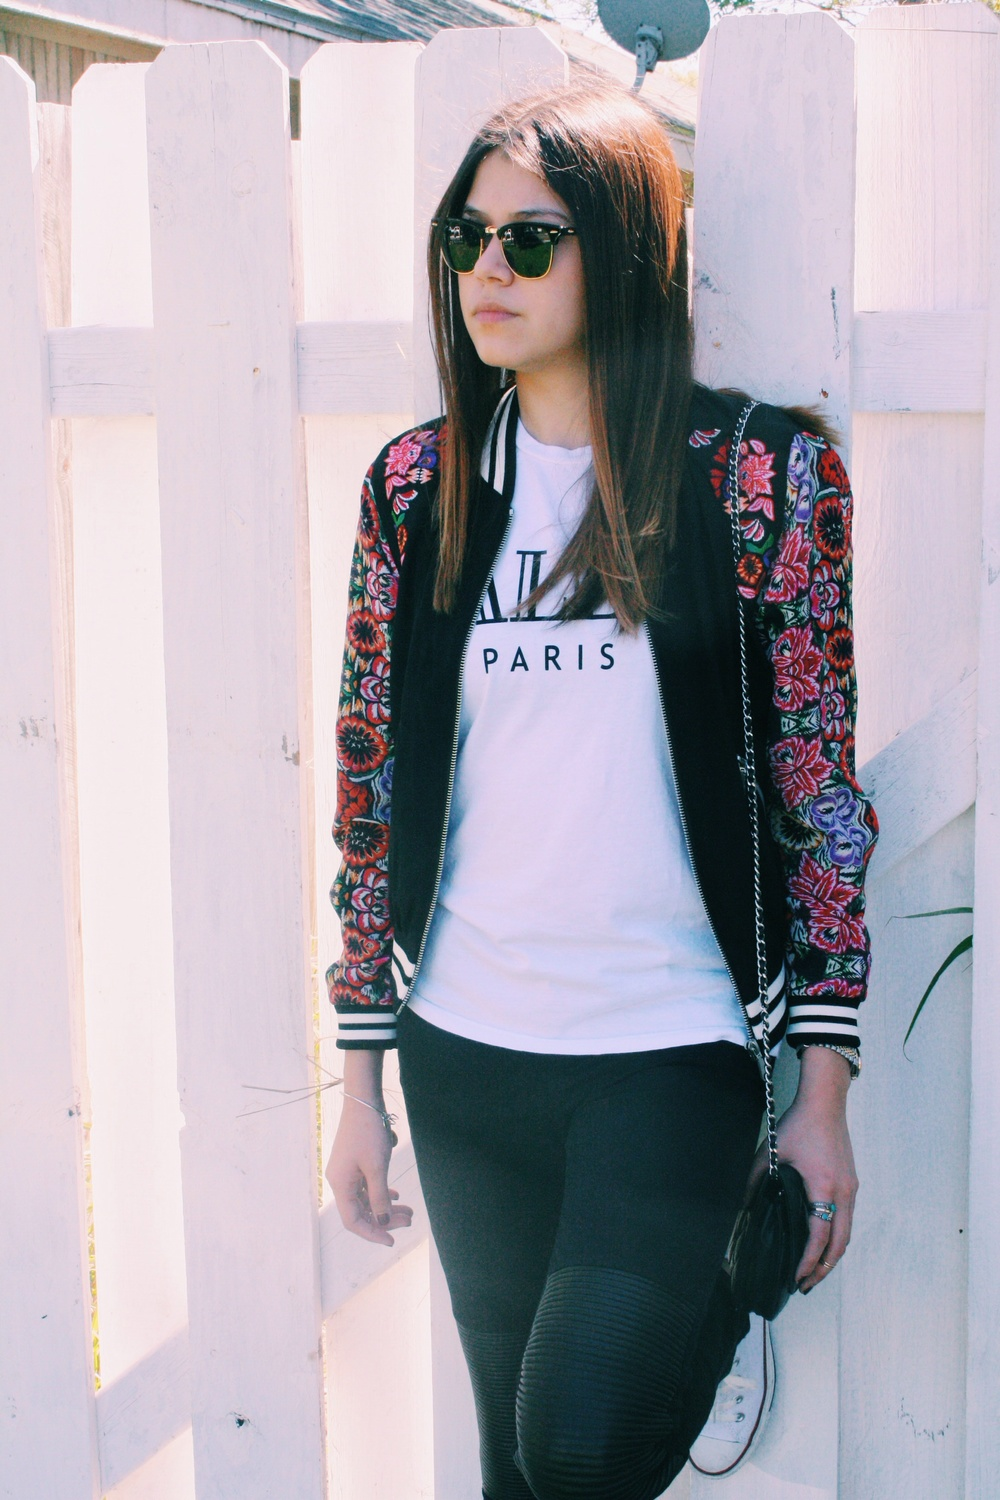 floral jacket: rebecca minkoff | muscle tee: the laundry room/revolve clothing | jeans: jbrand/shopbop | sneakers: converse | shades: ray ban | cross body: chanel | rings: urban outfitters/free people